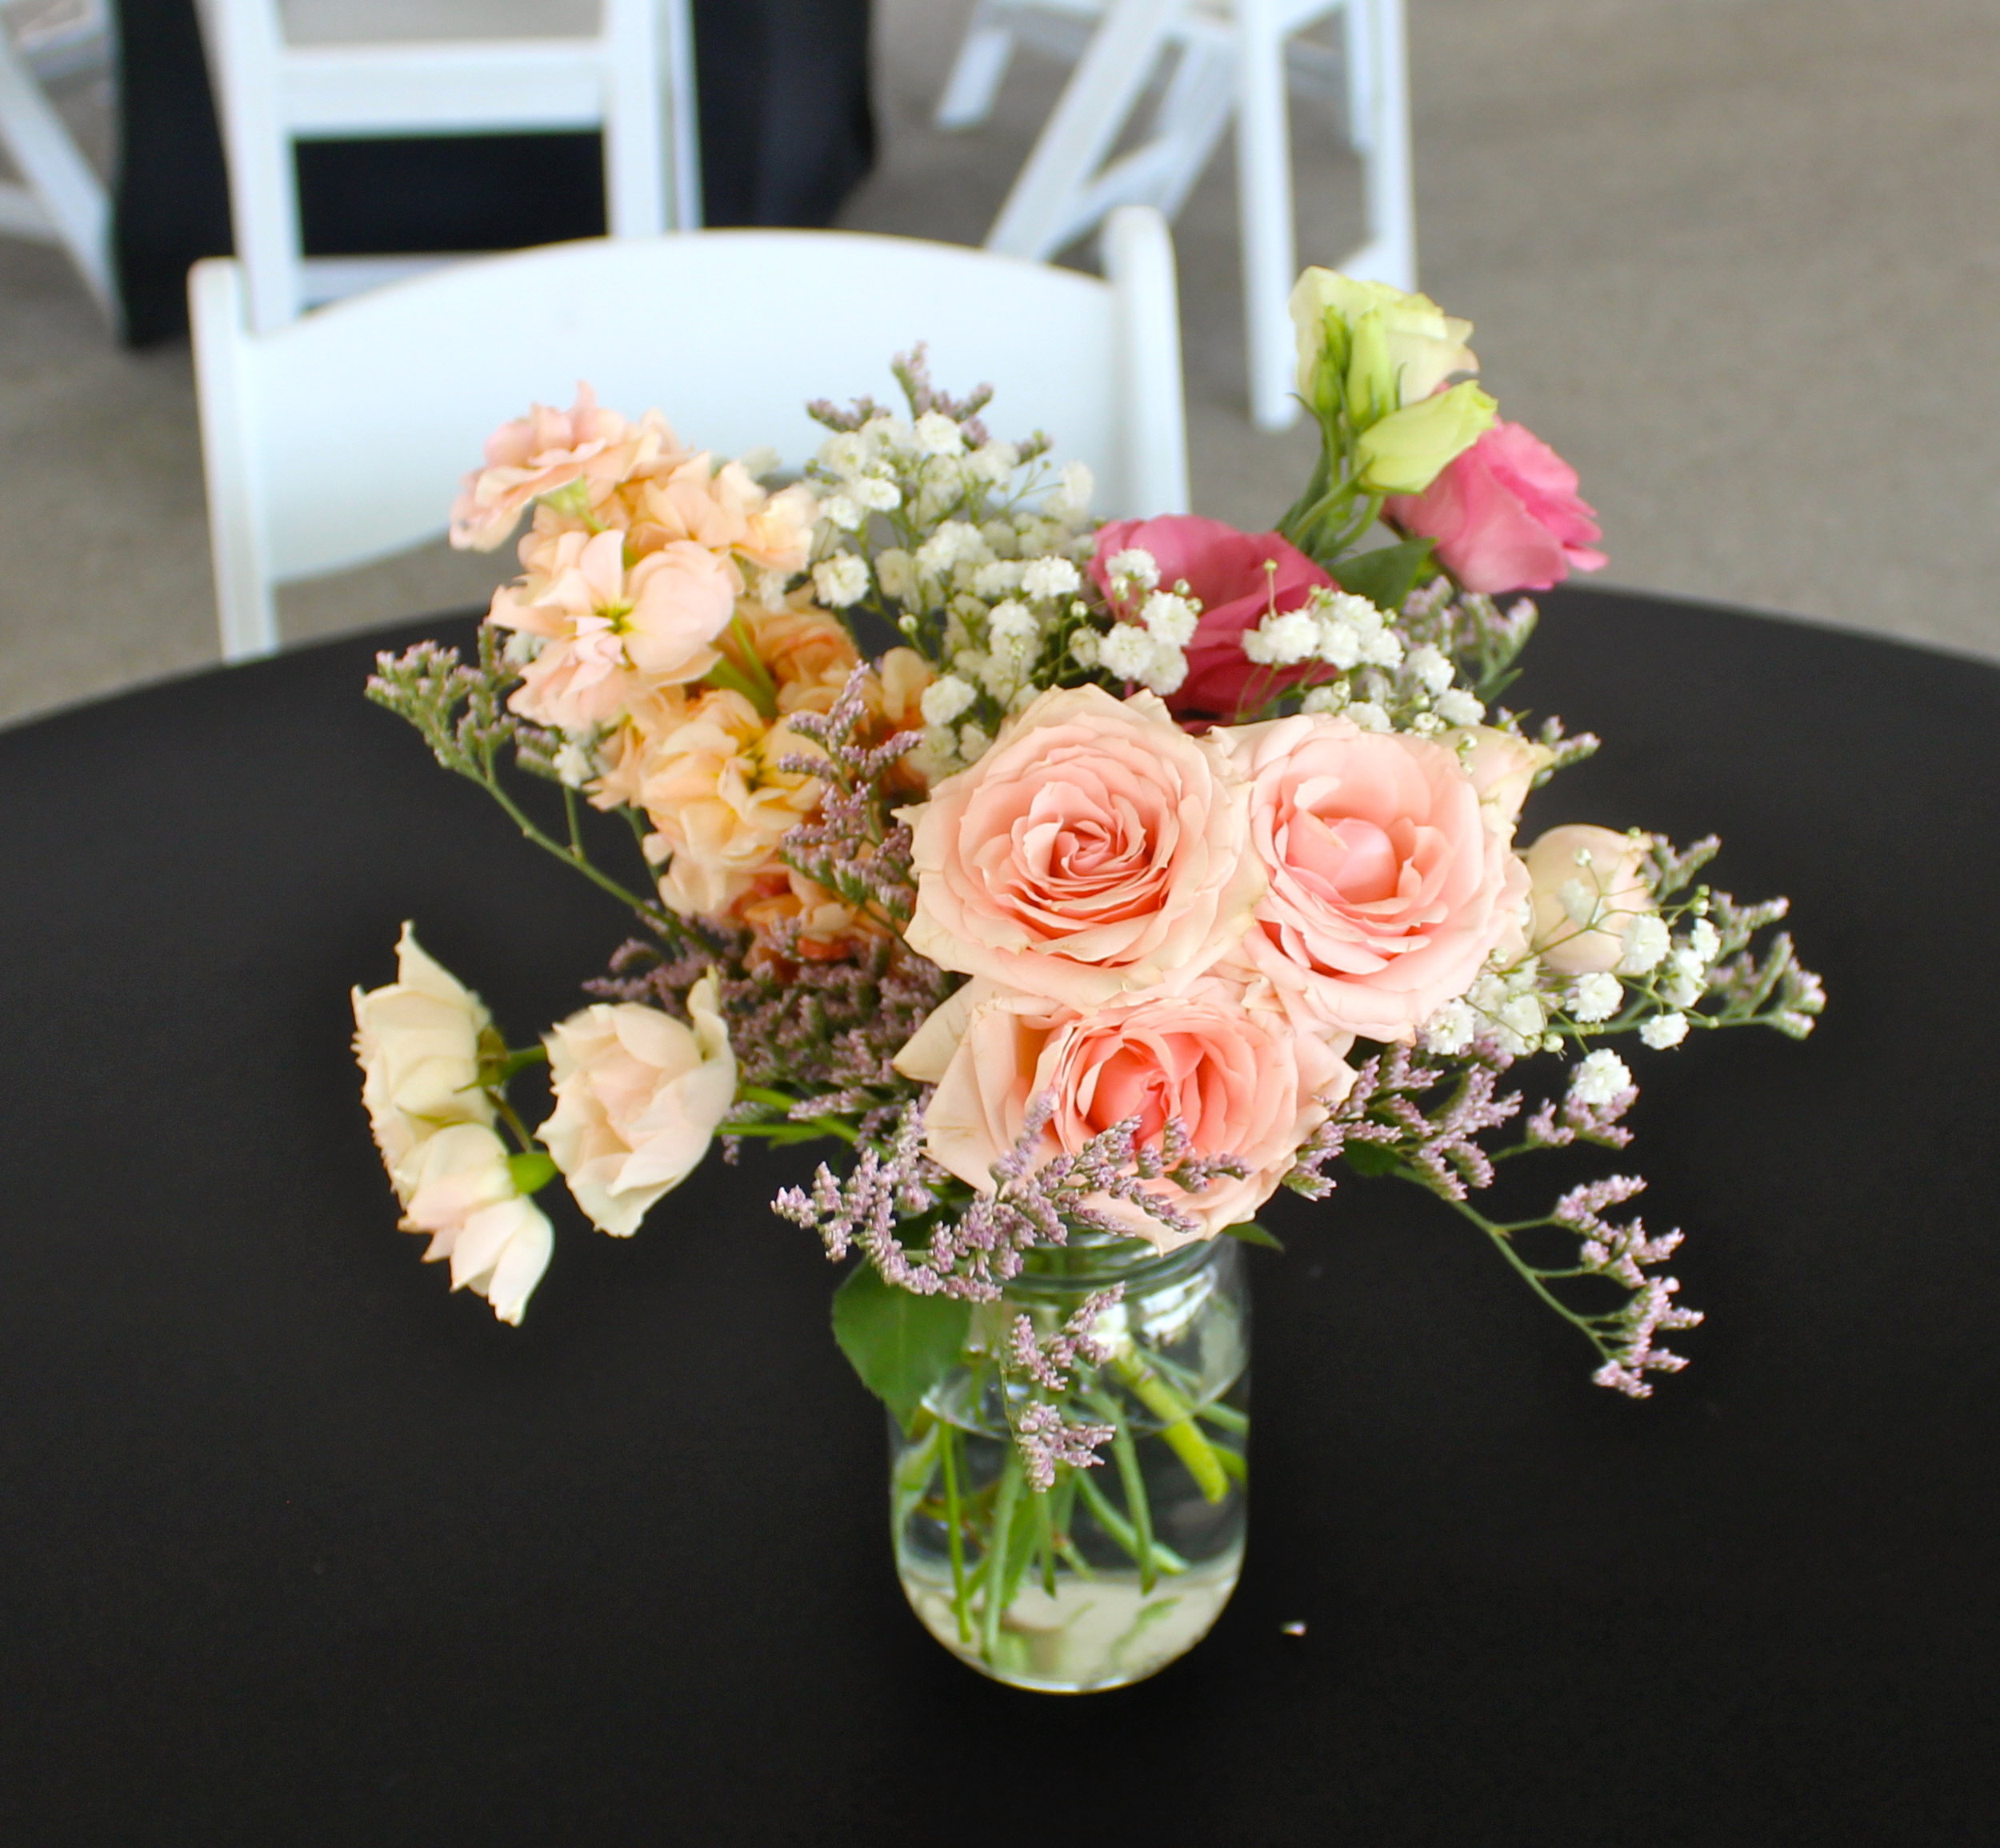 clover and honey florals for reception